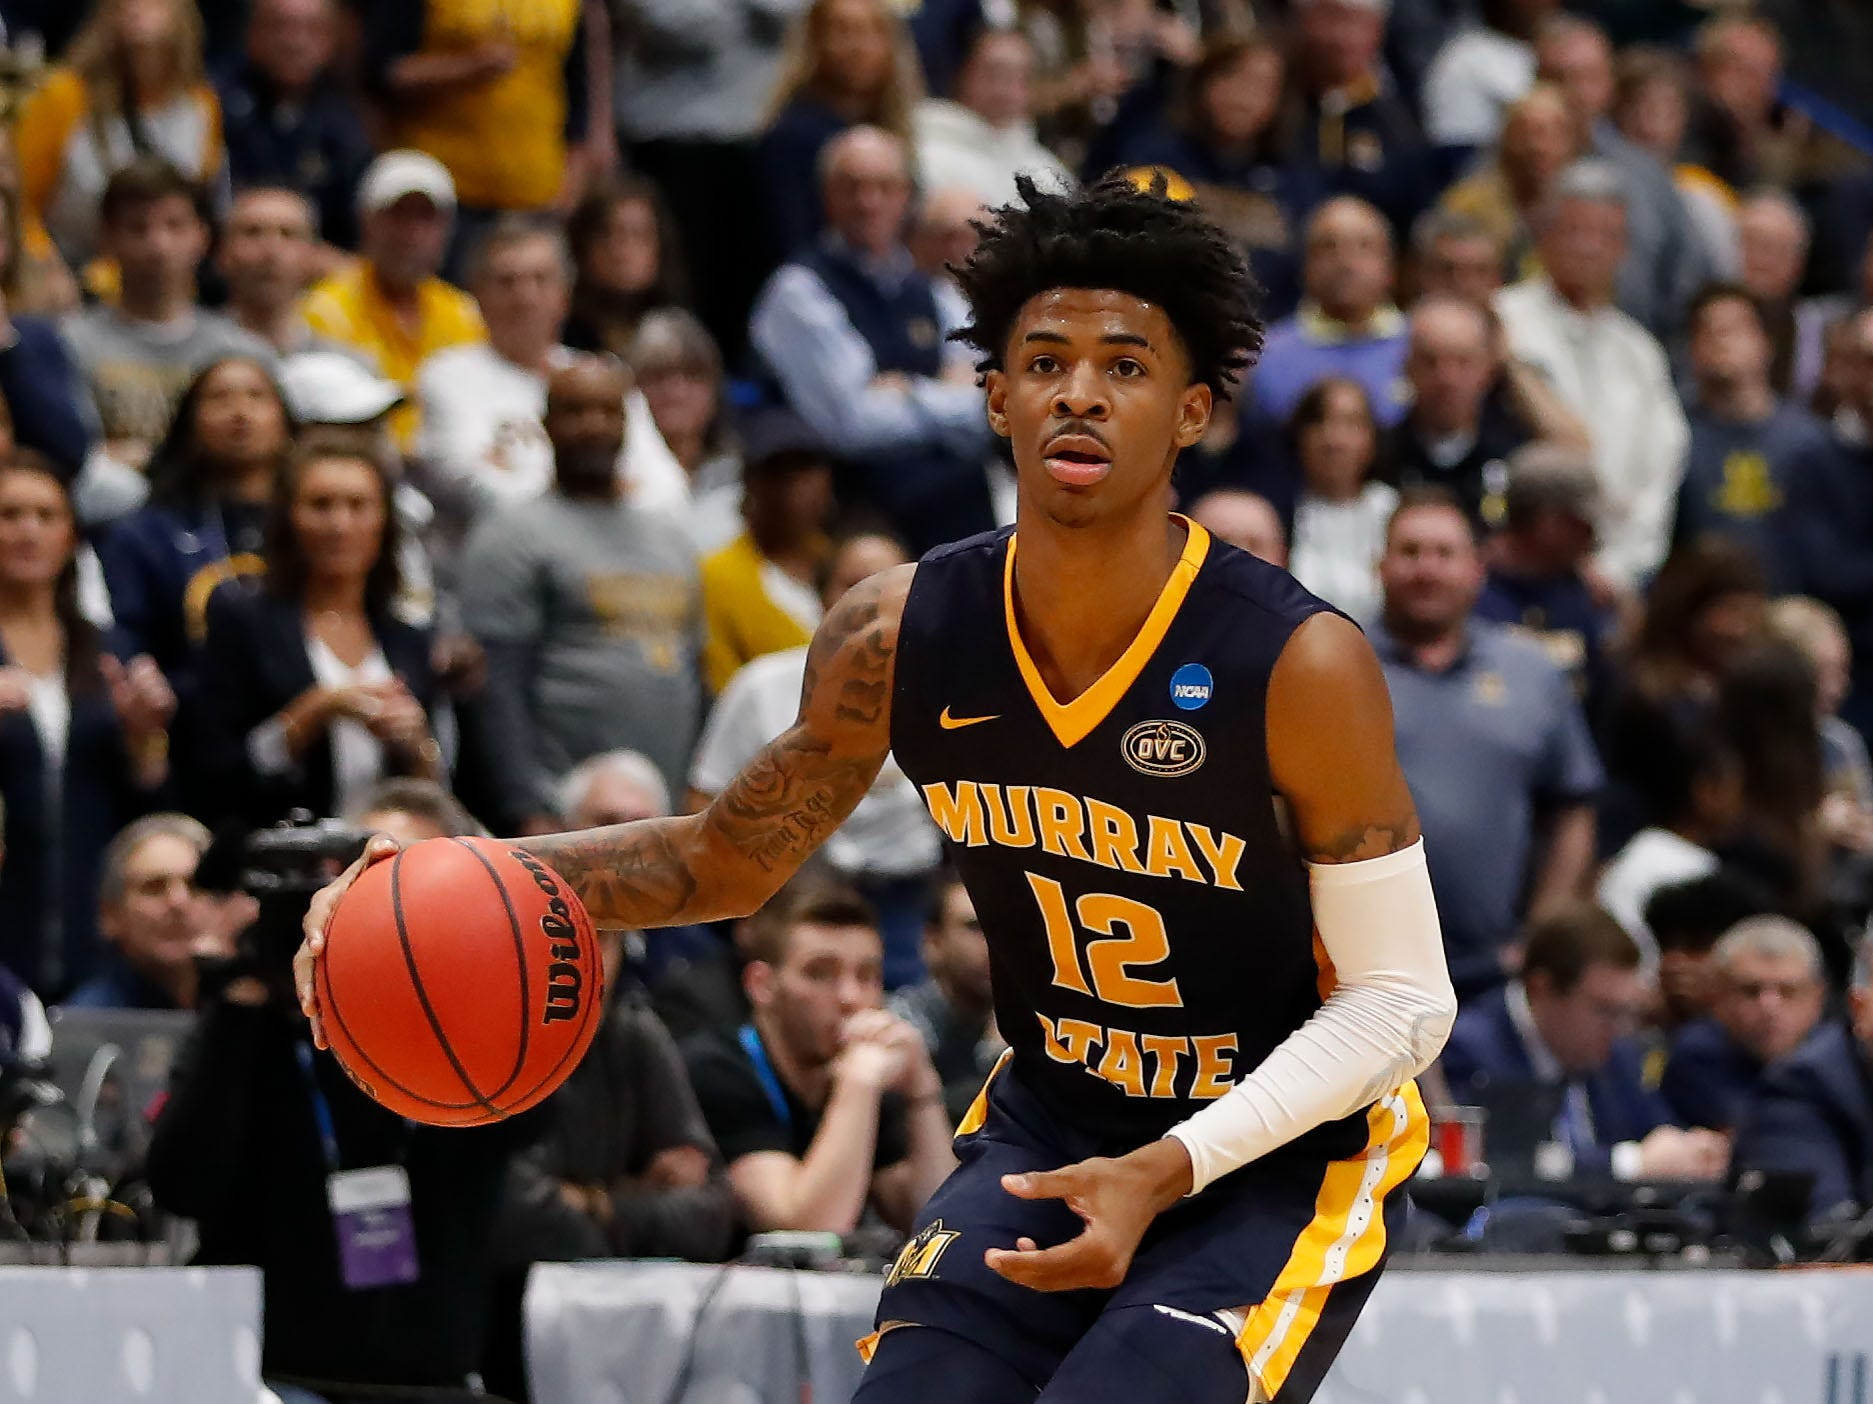 Mar 23, 2019; Hartford, CT, USA; Murray State Racers guard Ja Morant (12) dribbles the ball during the first half of a game against the Florida State Seminoles in the second round of the 2019 NCAA Tournament at XL Center. Mandatory Credit: David Butler II-USA TODAY Sports